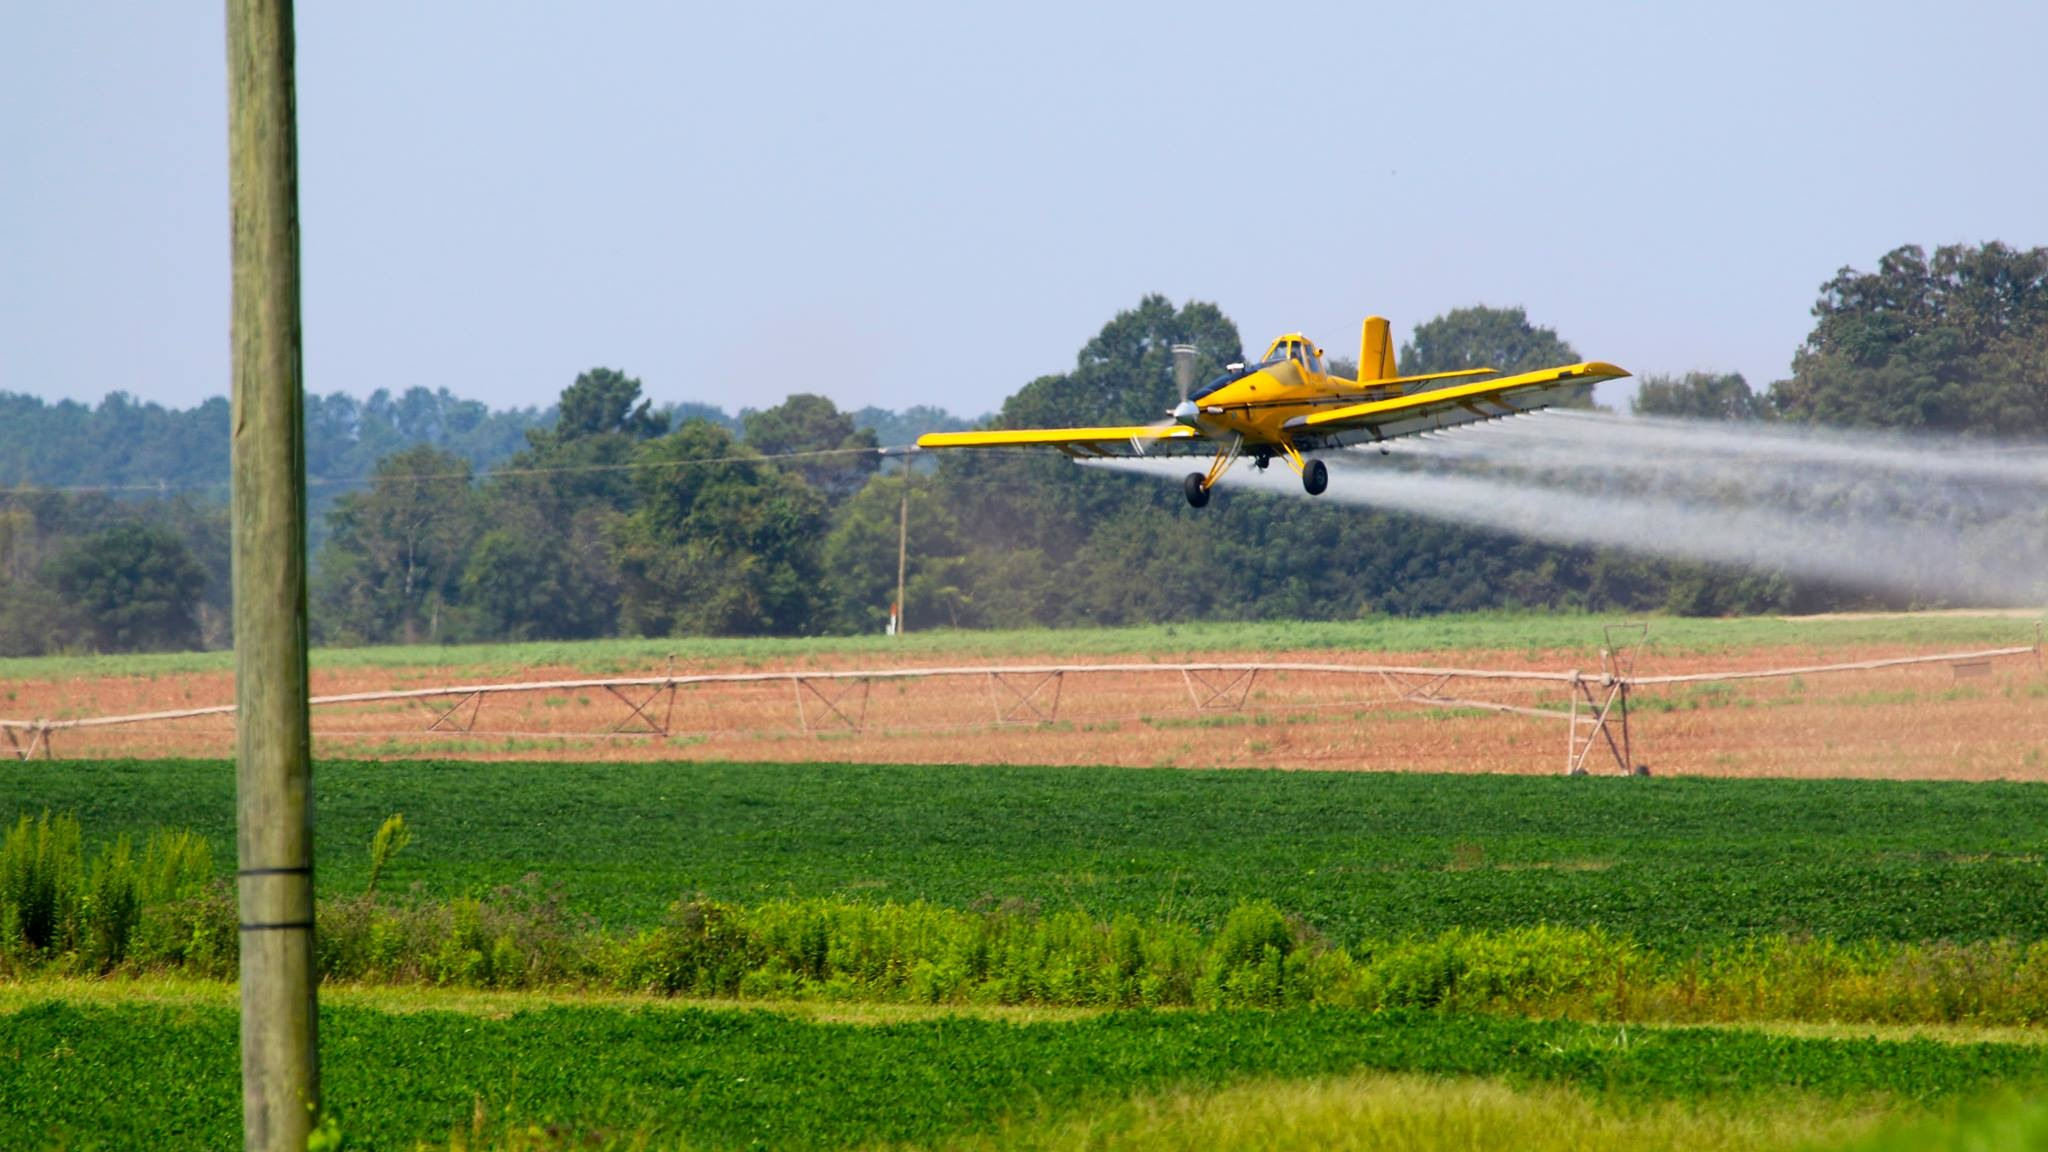 crop dusting in Georgia by Keyaurisdad